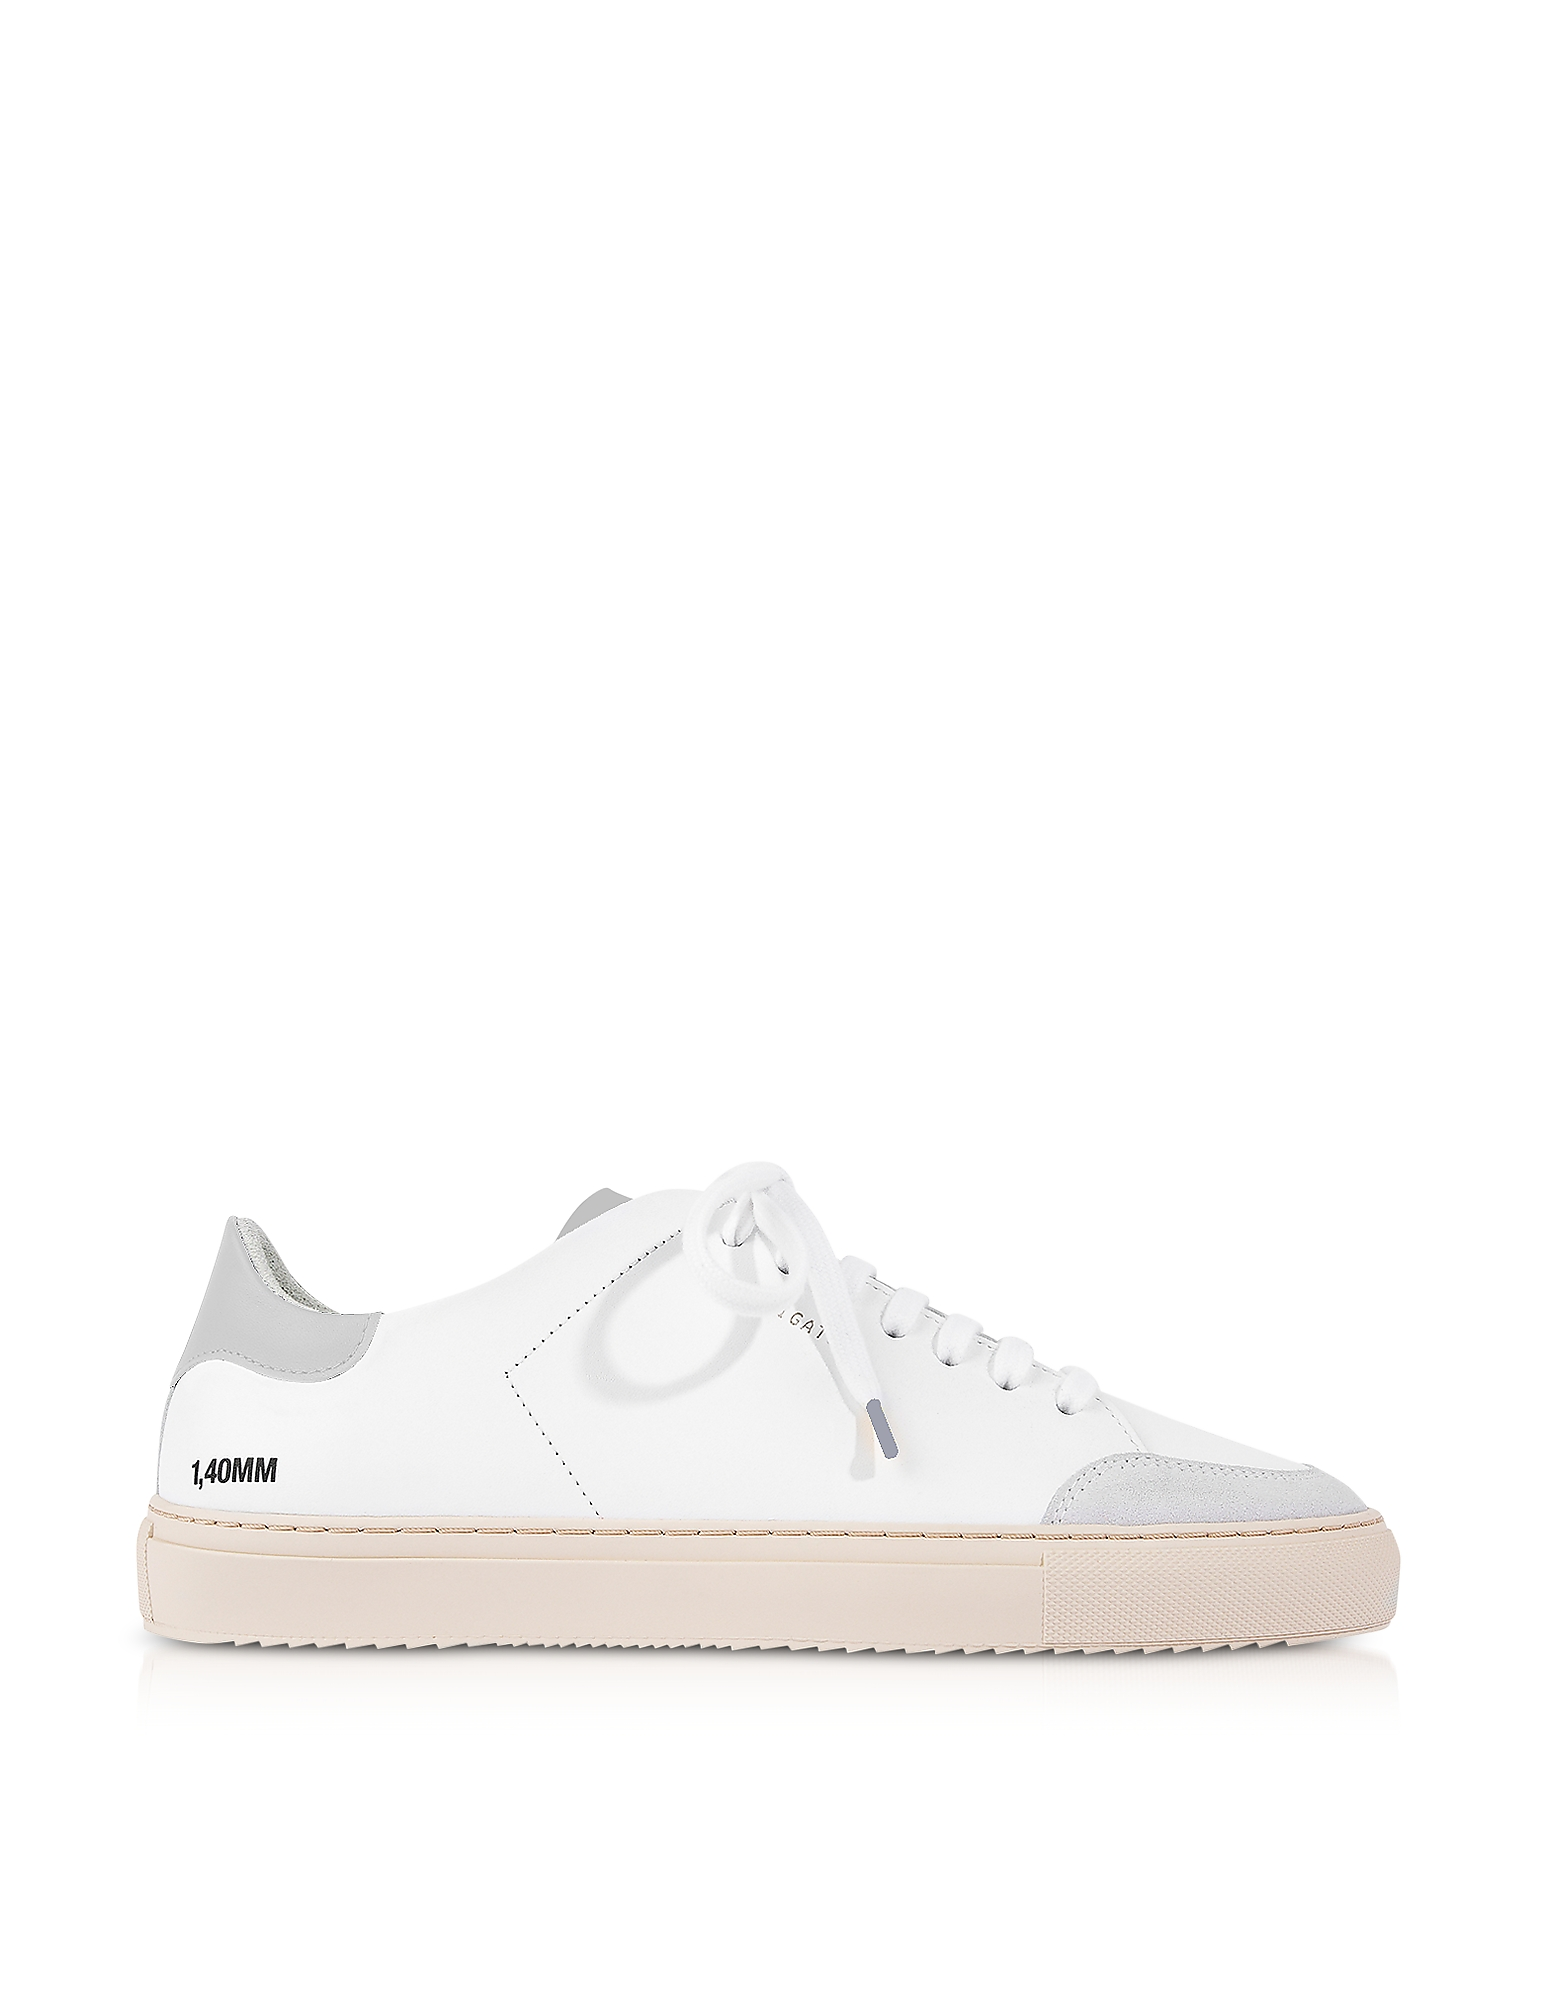 Clean 90 Triple White Grey Leather Men's Sneakers